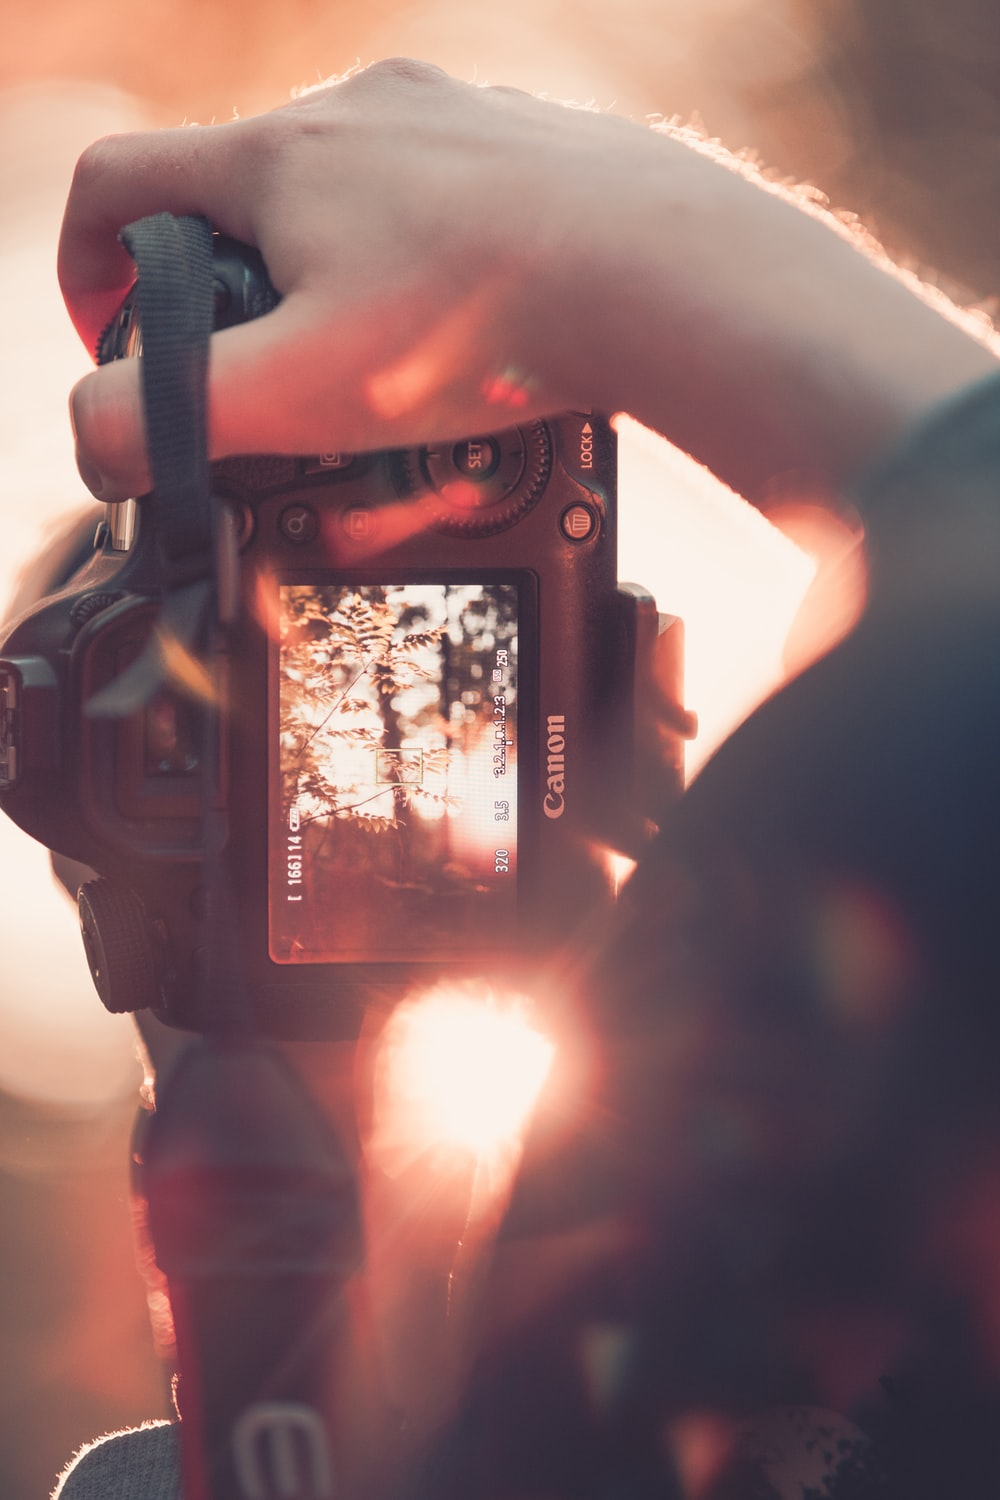 selective focus photography of person holding Canon DSLR camera and taking picture of tree